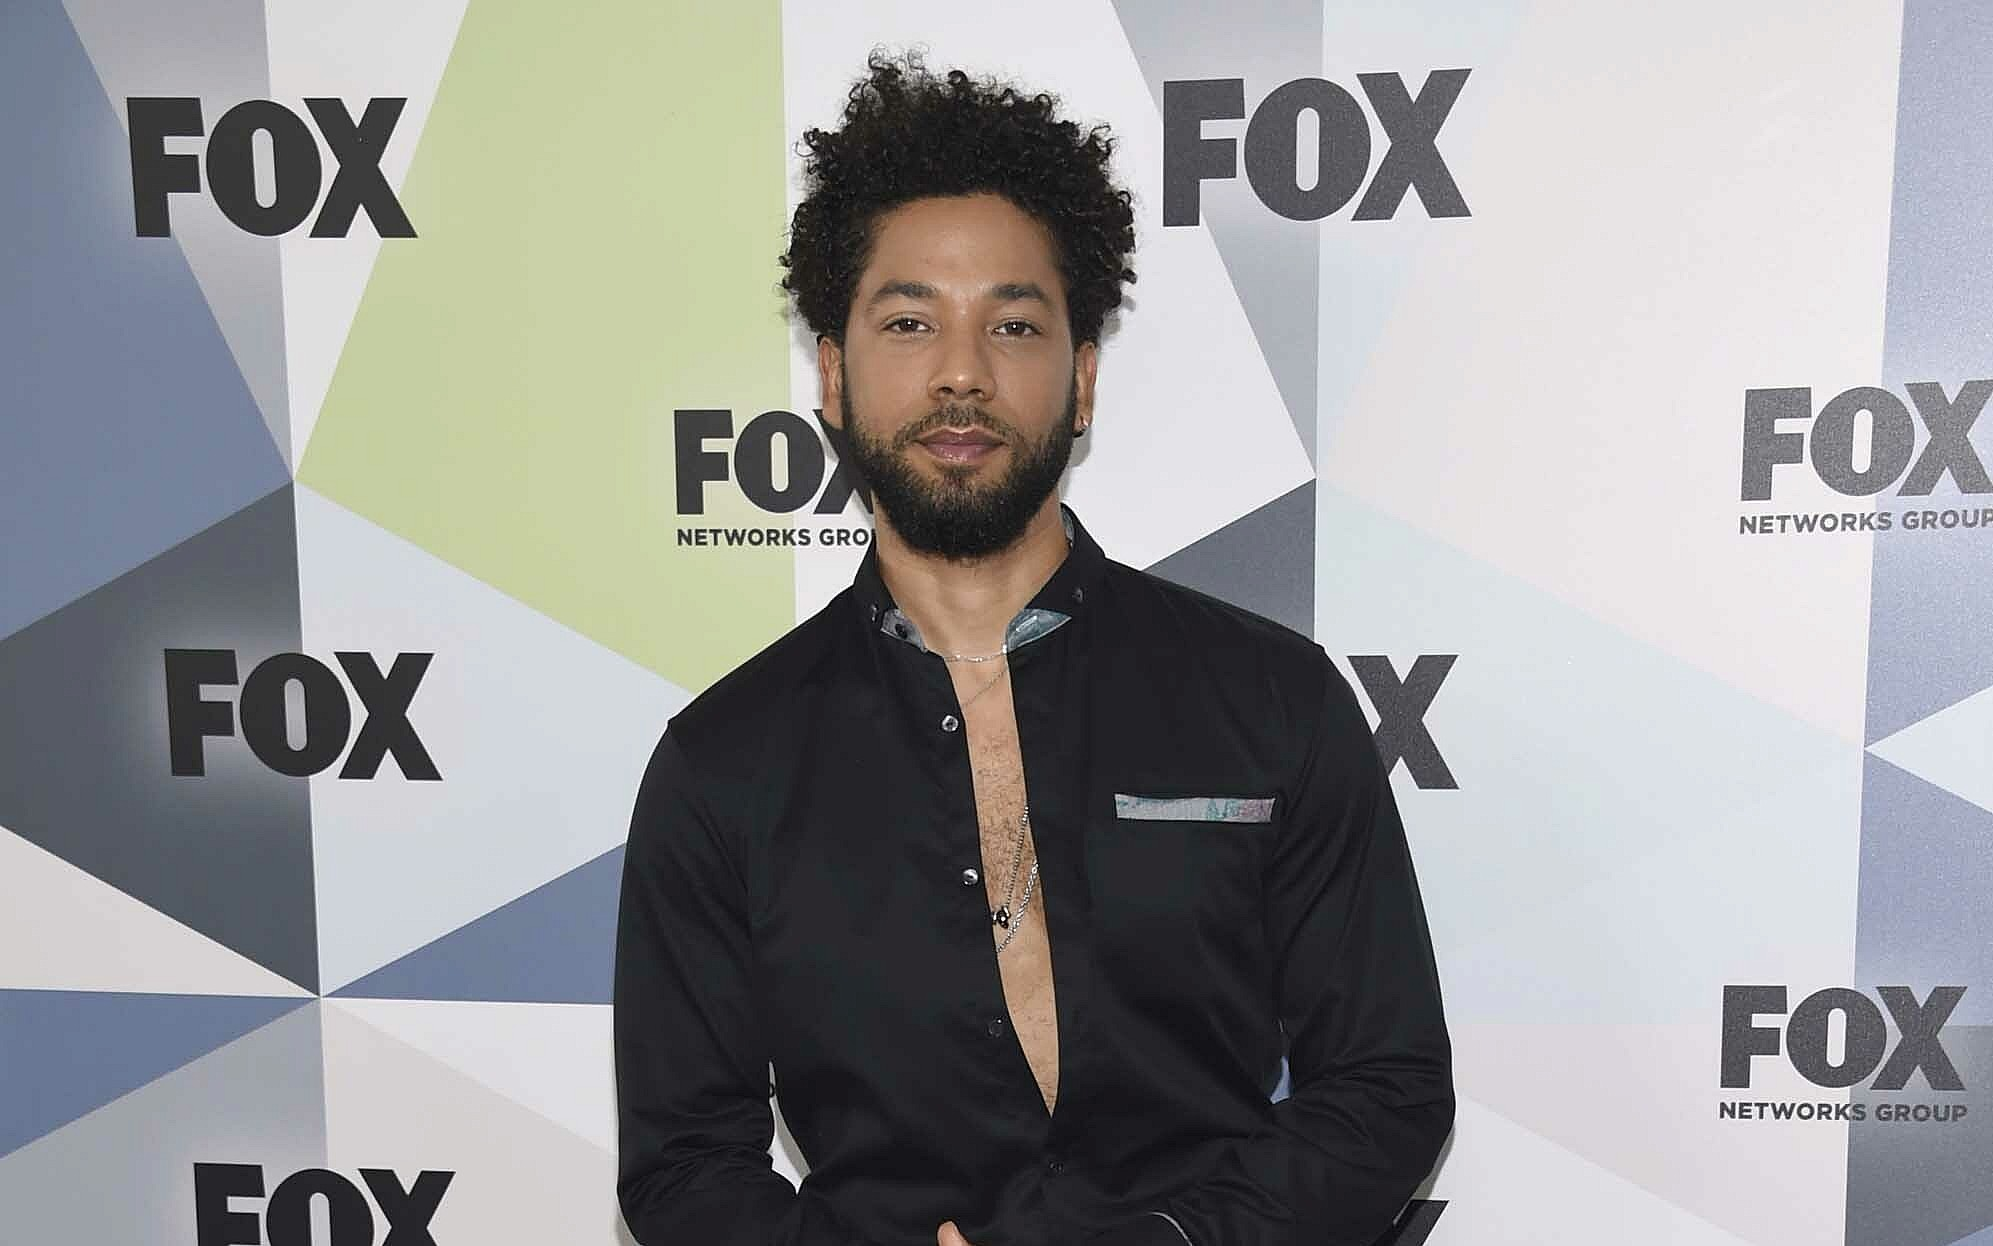 Jussie Smollett refutes police claim that he hired men to assault him